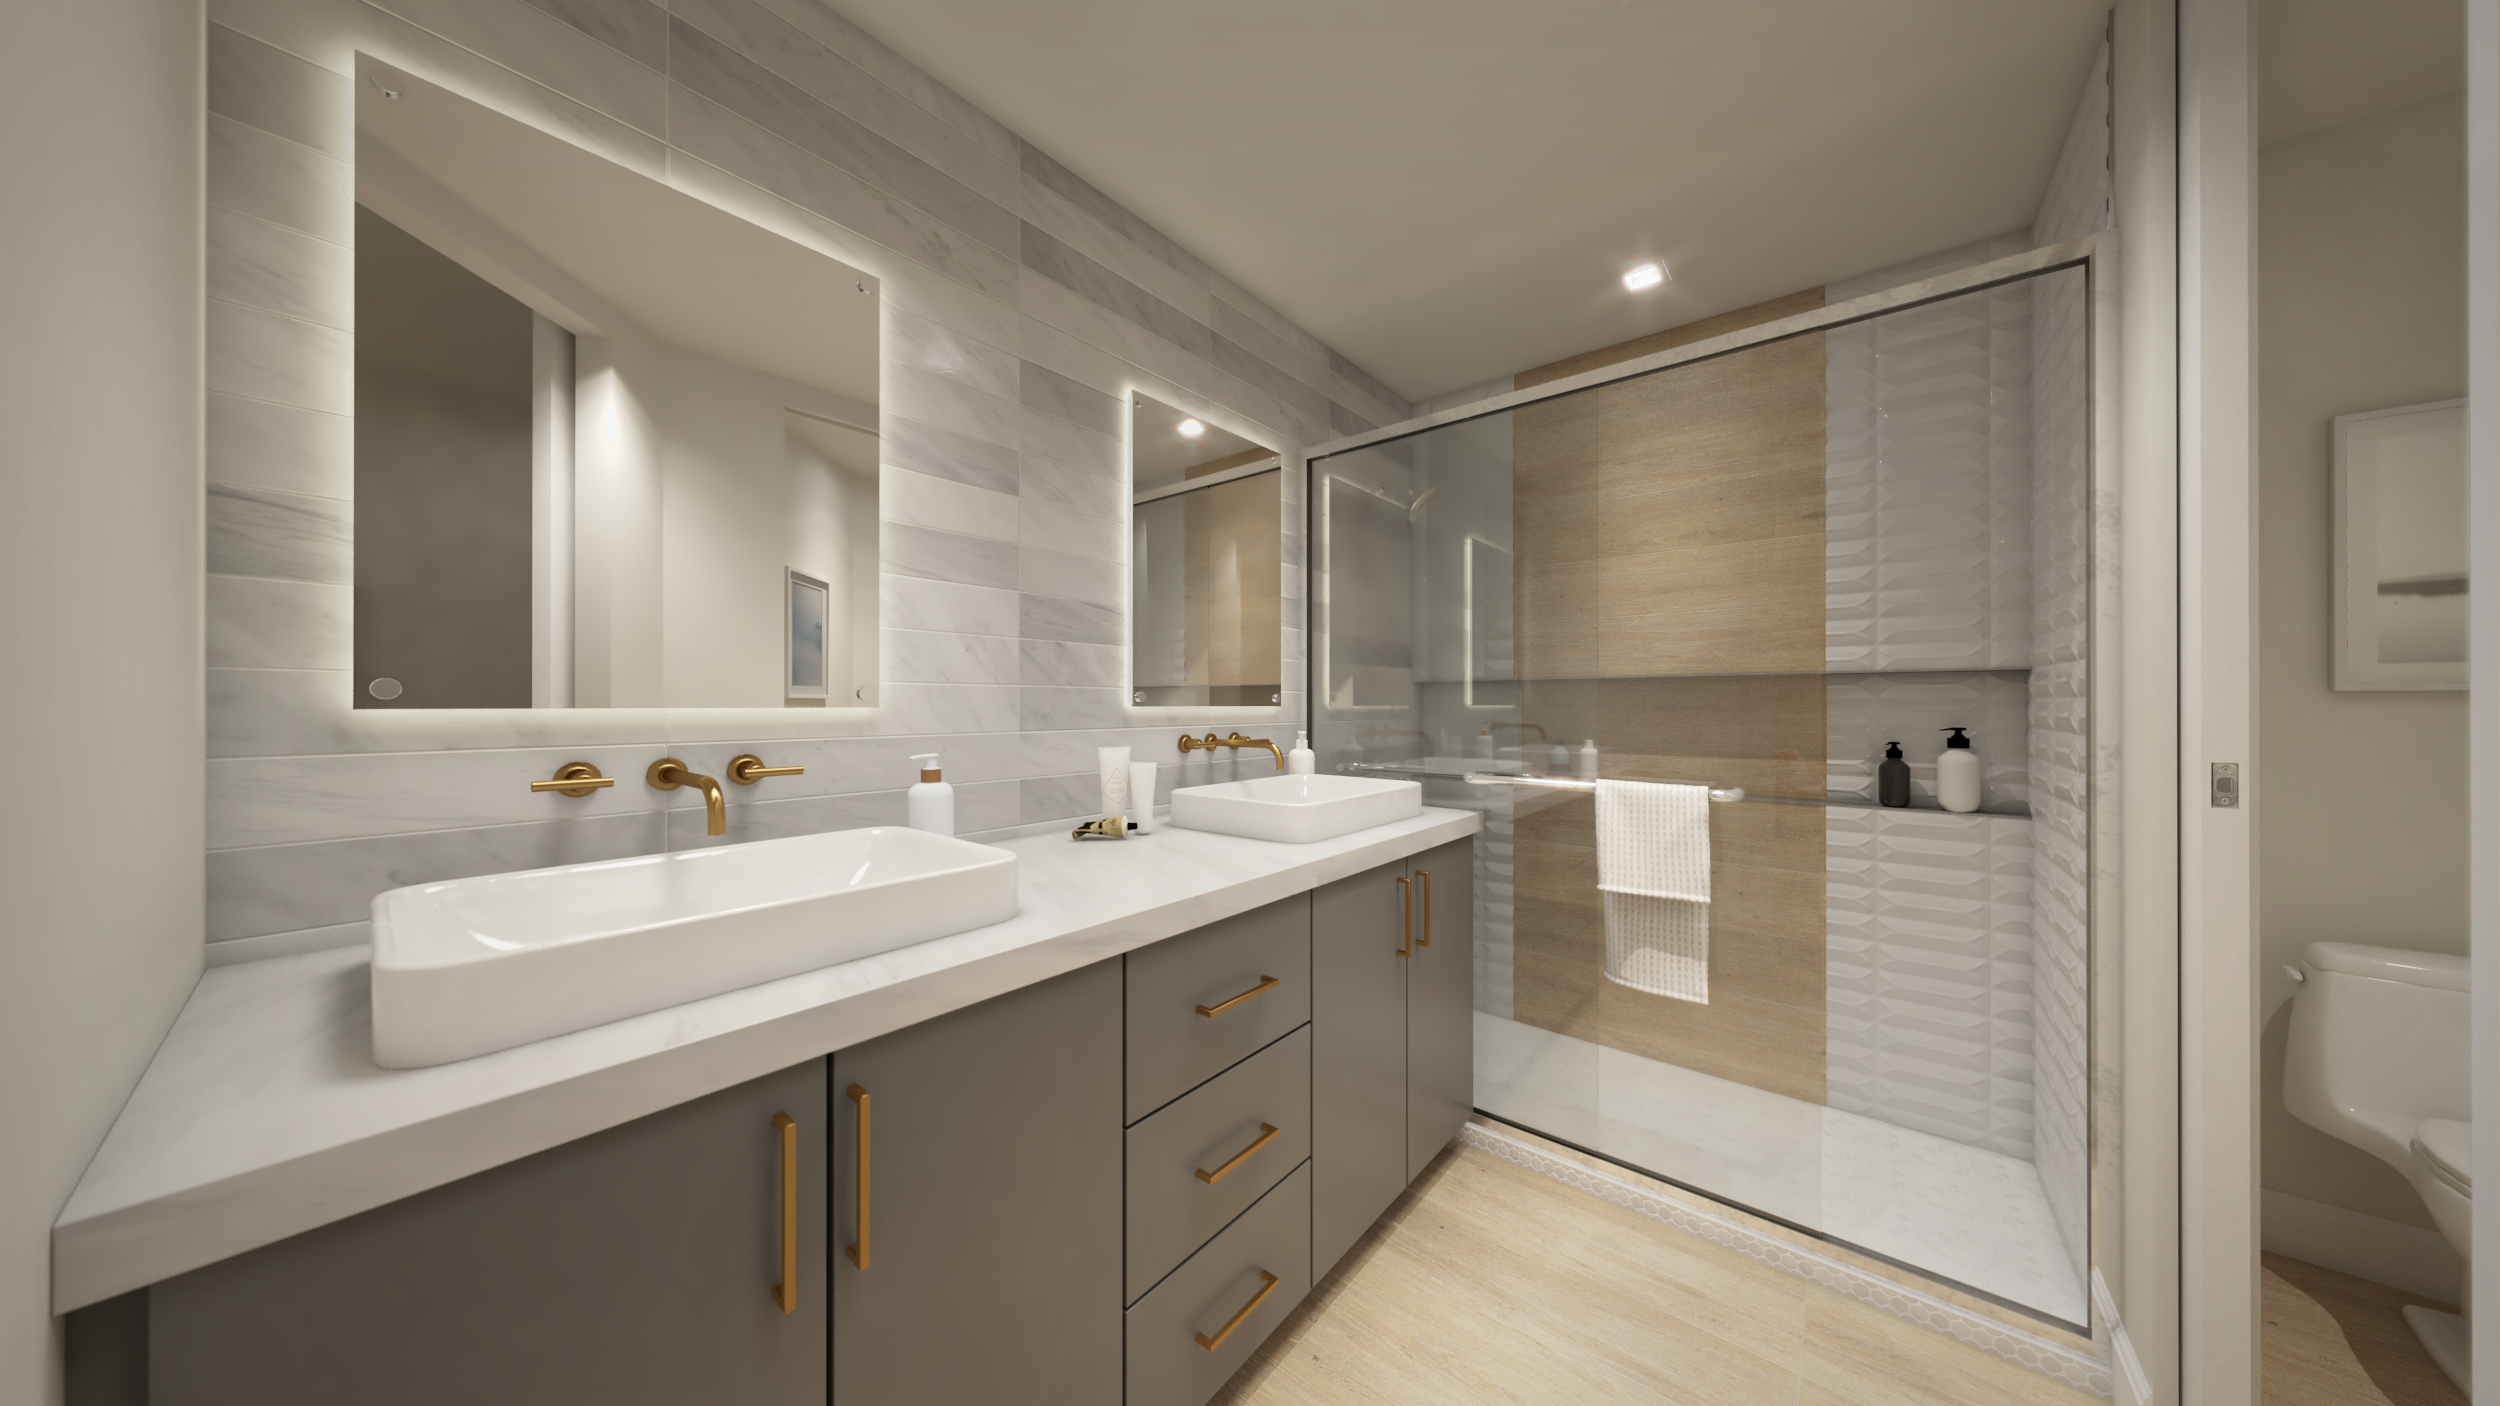 Artisan on Roosevelt interior finishes package 1 rendering B